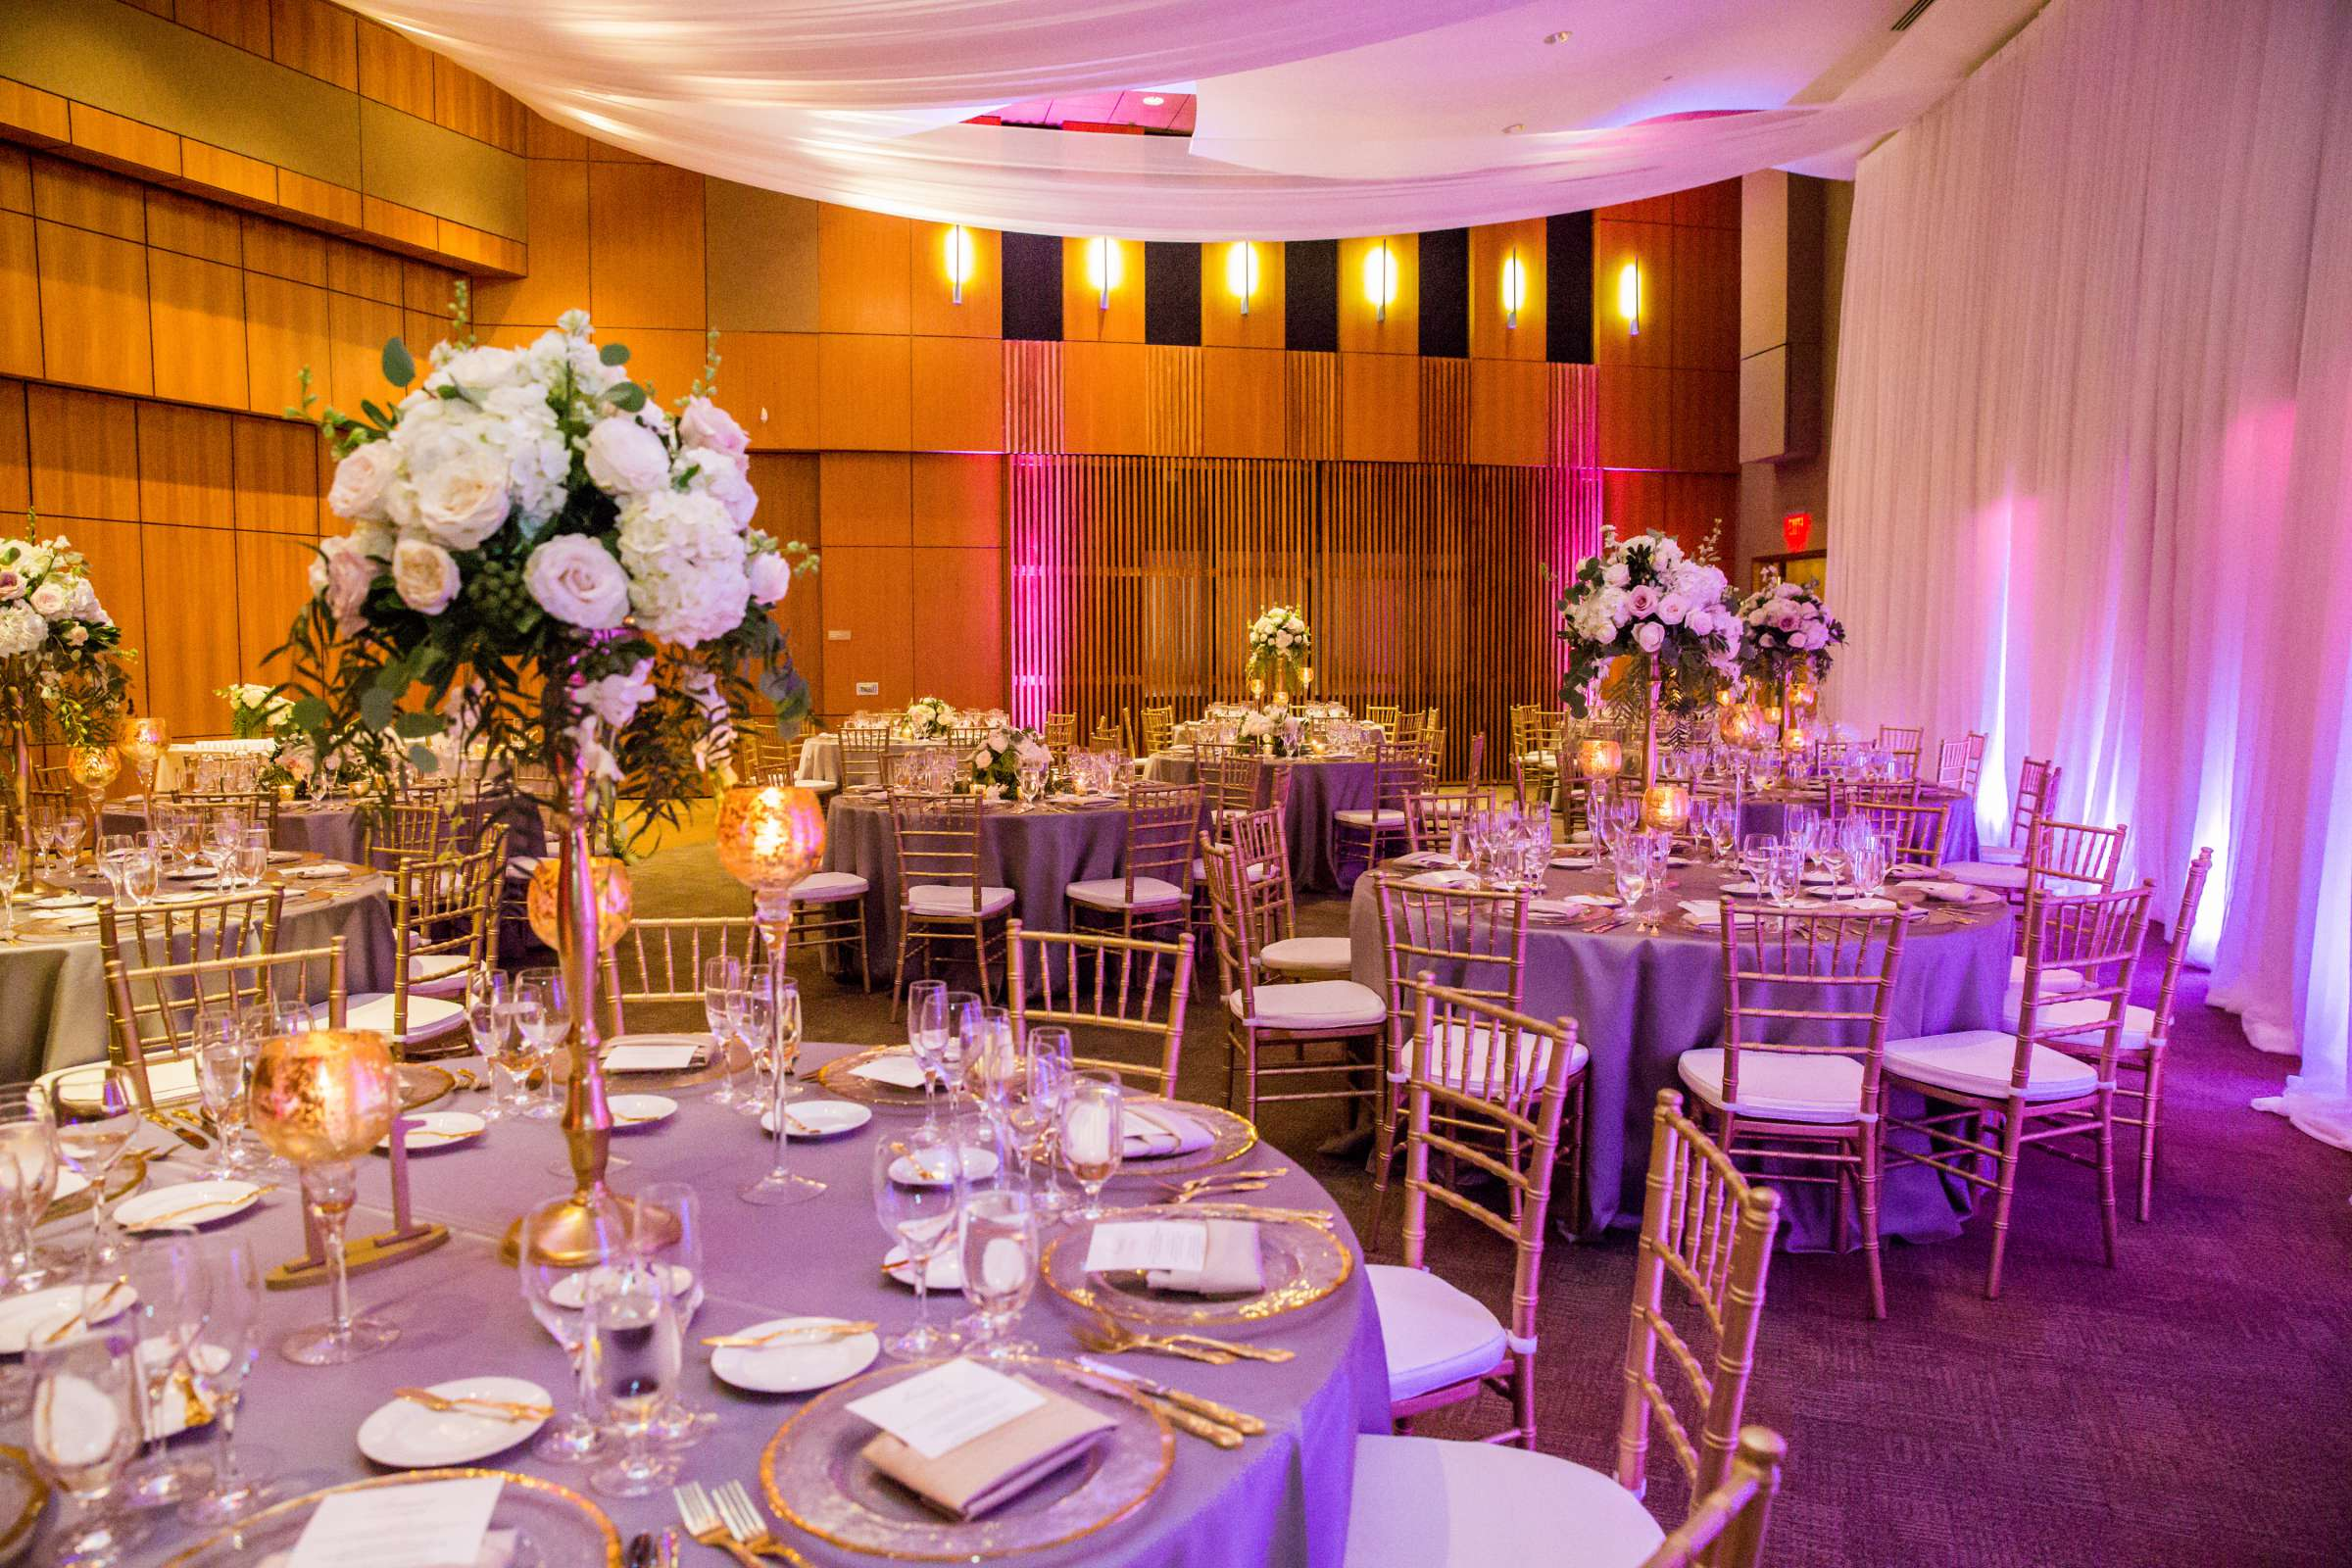 Scripps Seaside Forum Wedding coordinated by Lavish Weddings, Cindy and Justin Wedding Photo #381969 by True Photography